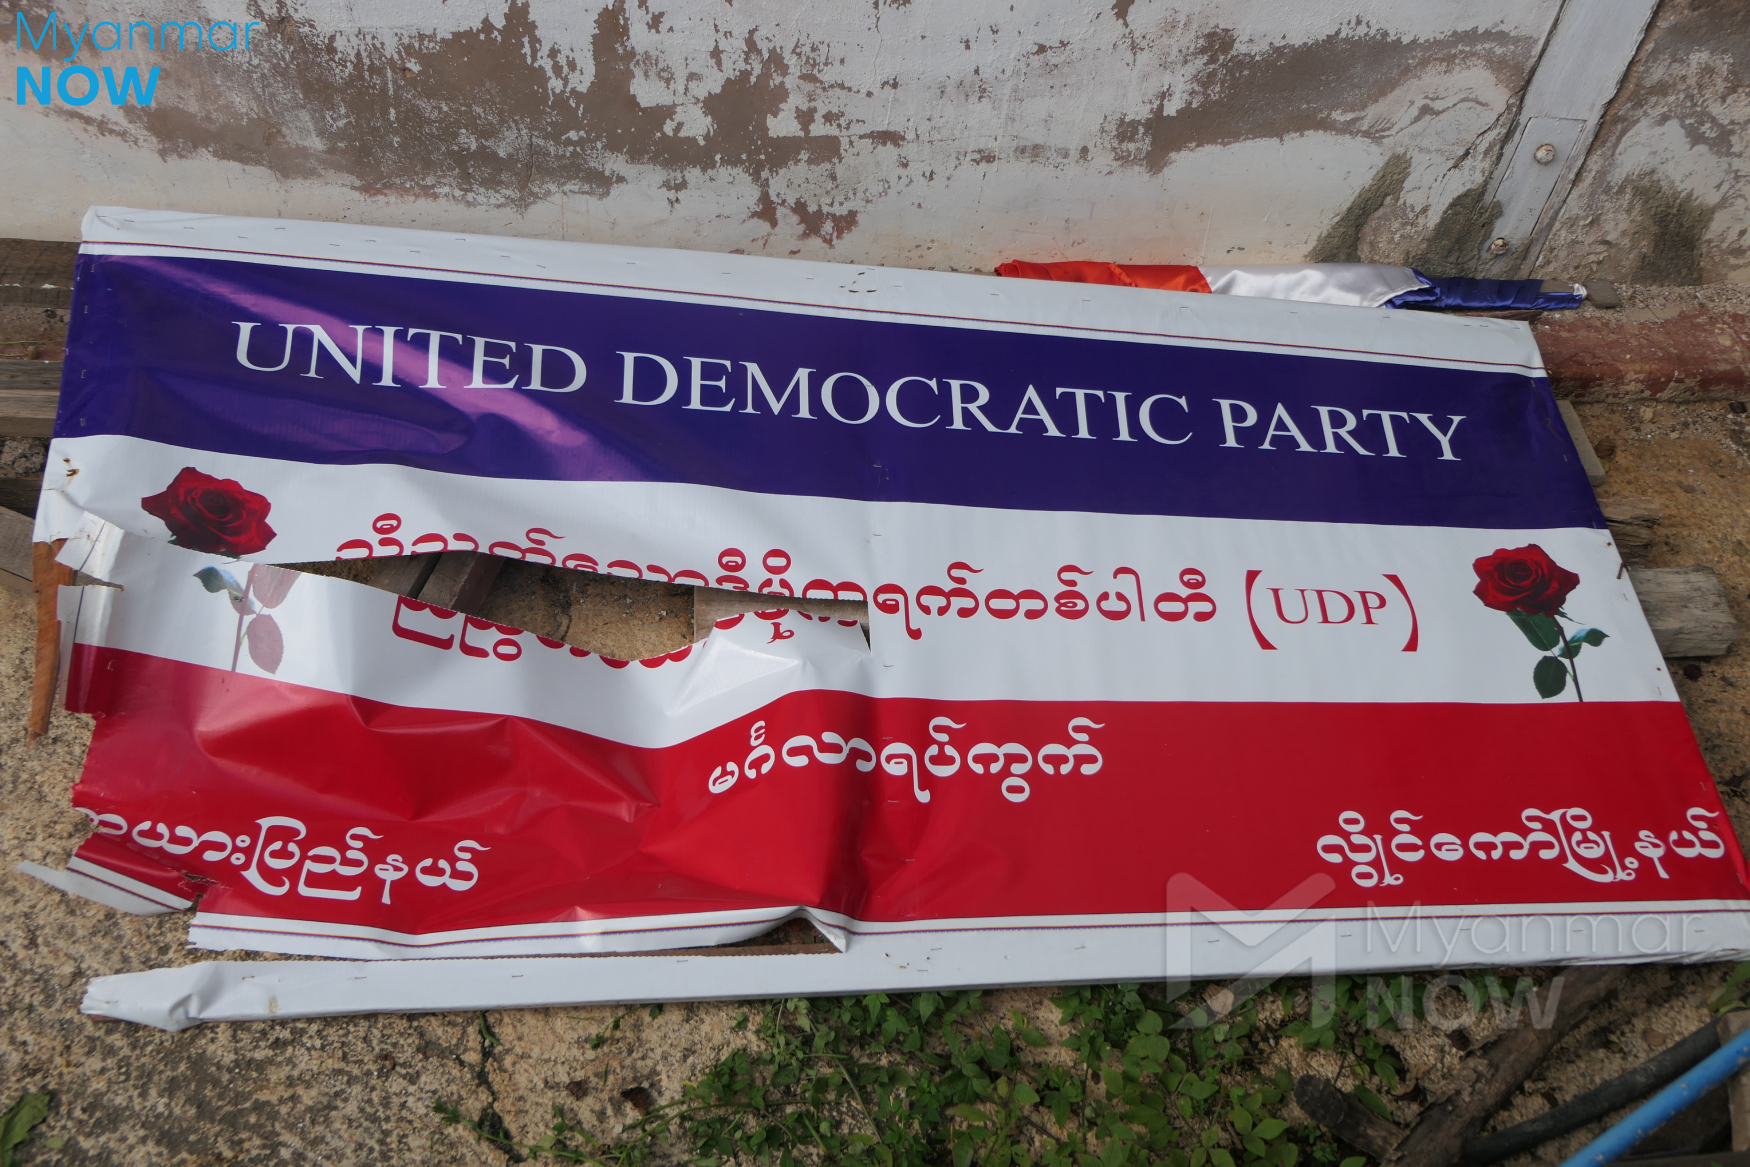 Arrest of UDP chair leaves party in disarray ahead of election | Myanmar NOW